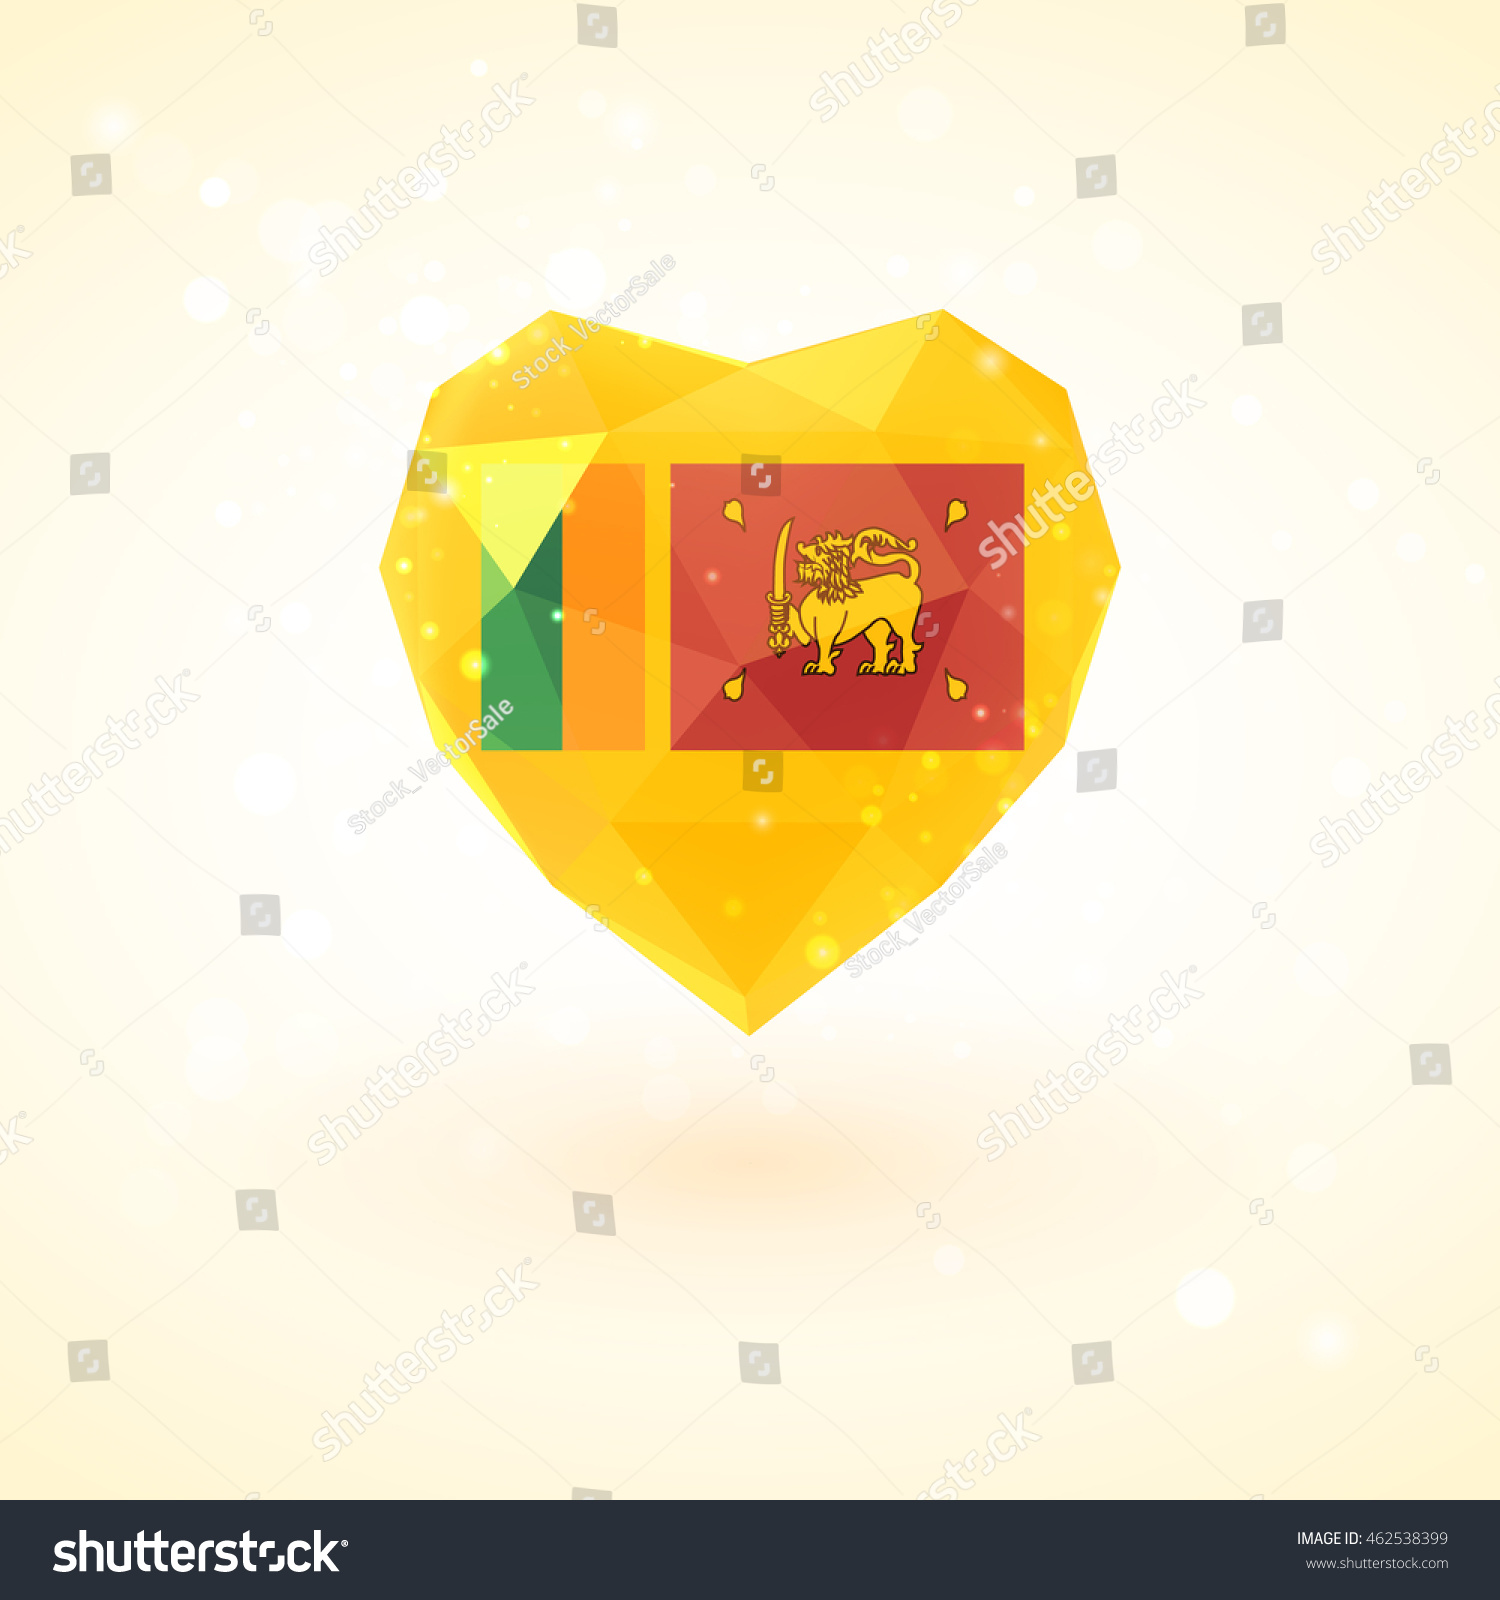 Flag sri lanka shape diamond glass stock vector royalty free flag of sri lanka in shape of diamond glass heart in triangulation style for info graphics m4hsunfo